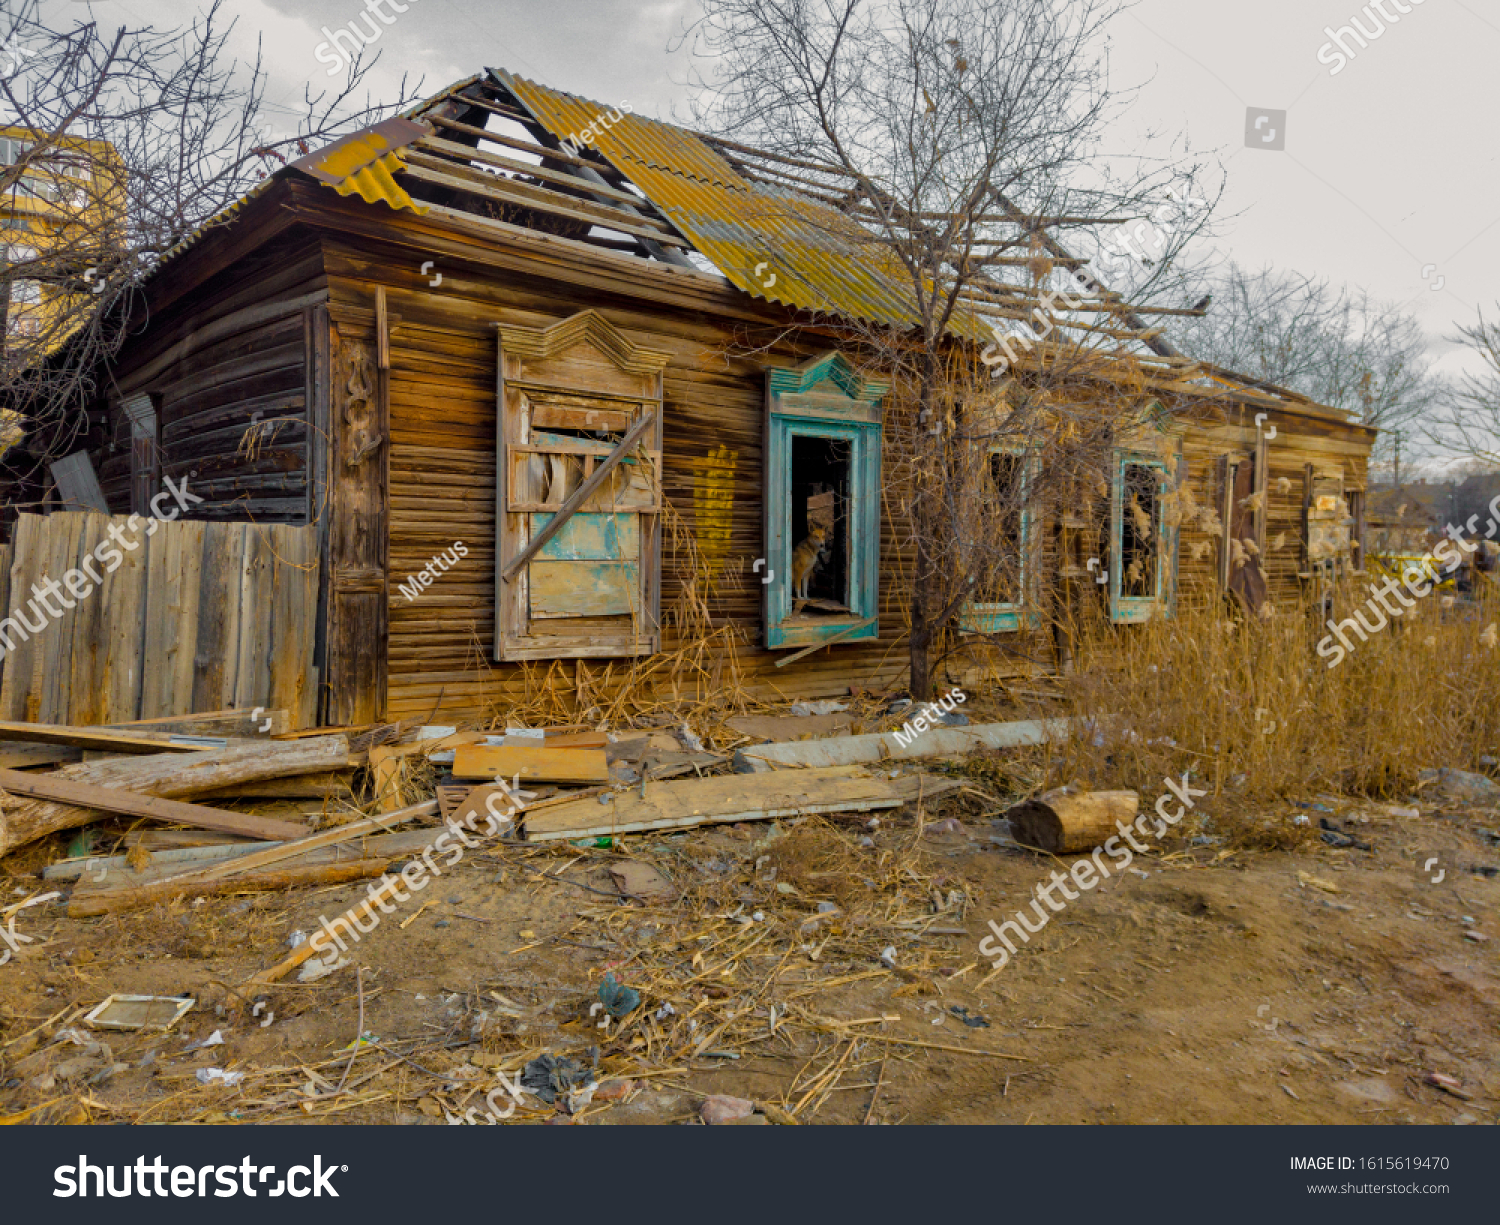 stock-photo-abandoned-ruin-old-tradition